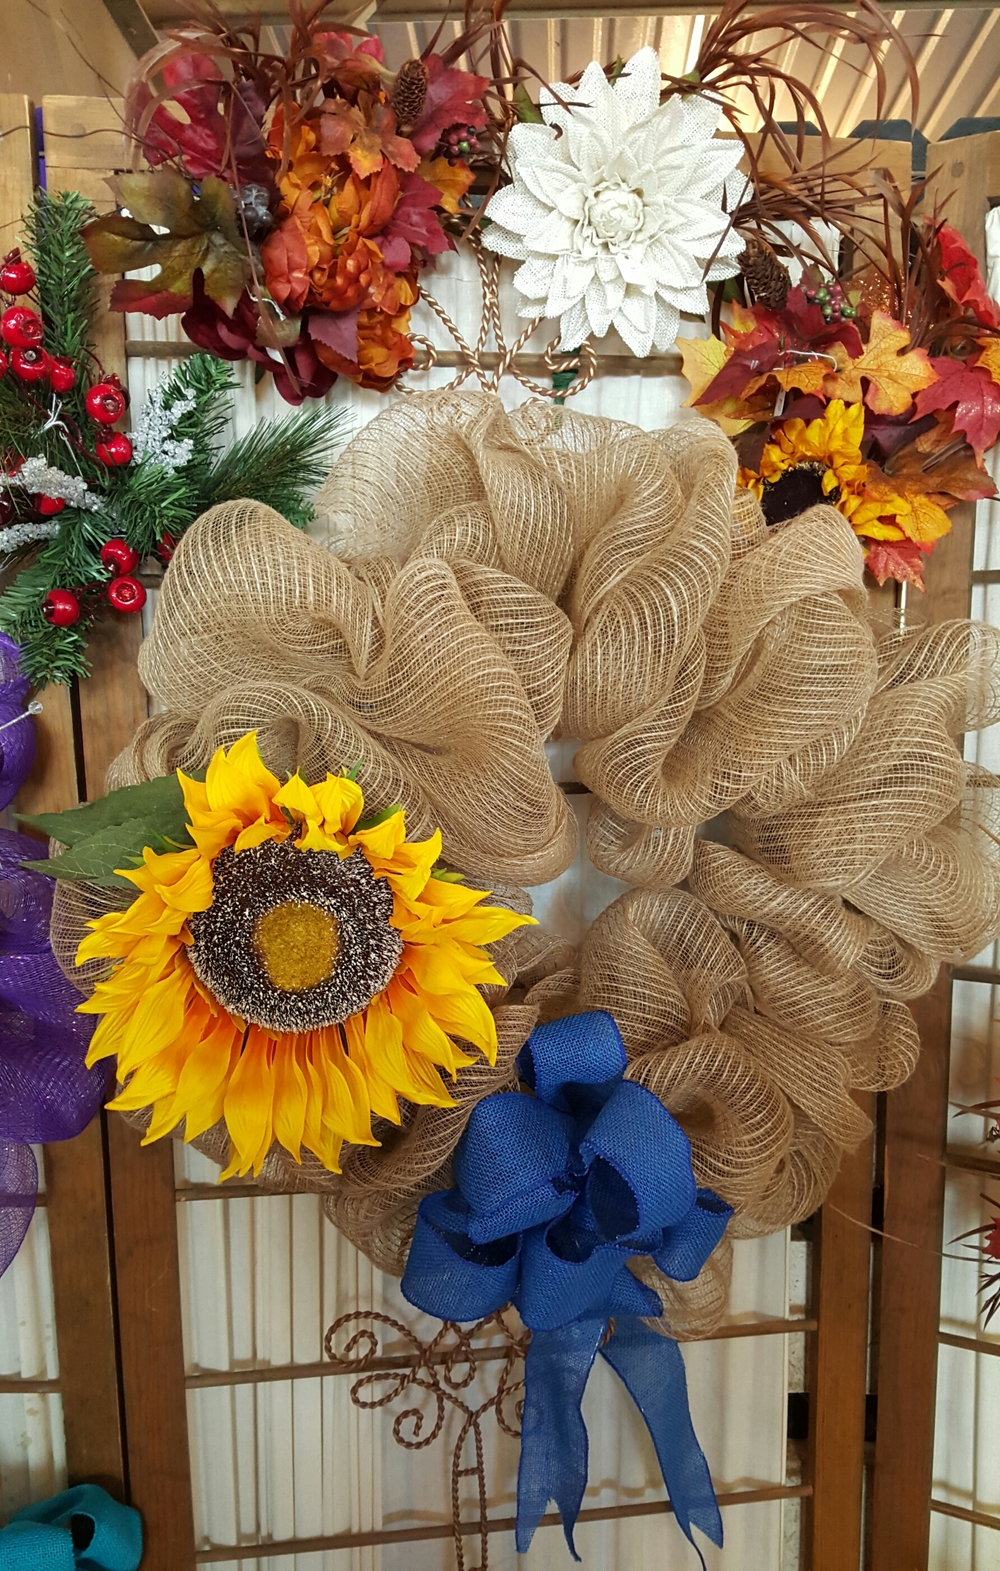 Seasonal burlap wreath medium- Base $25, picks & bows $10 each